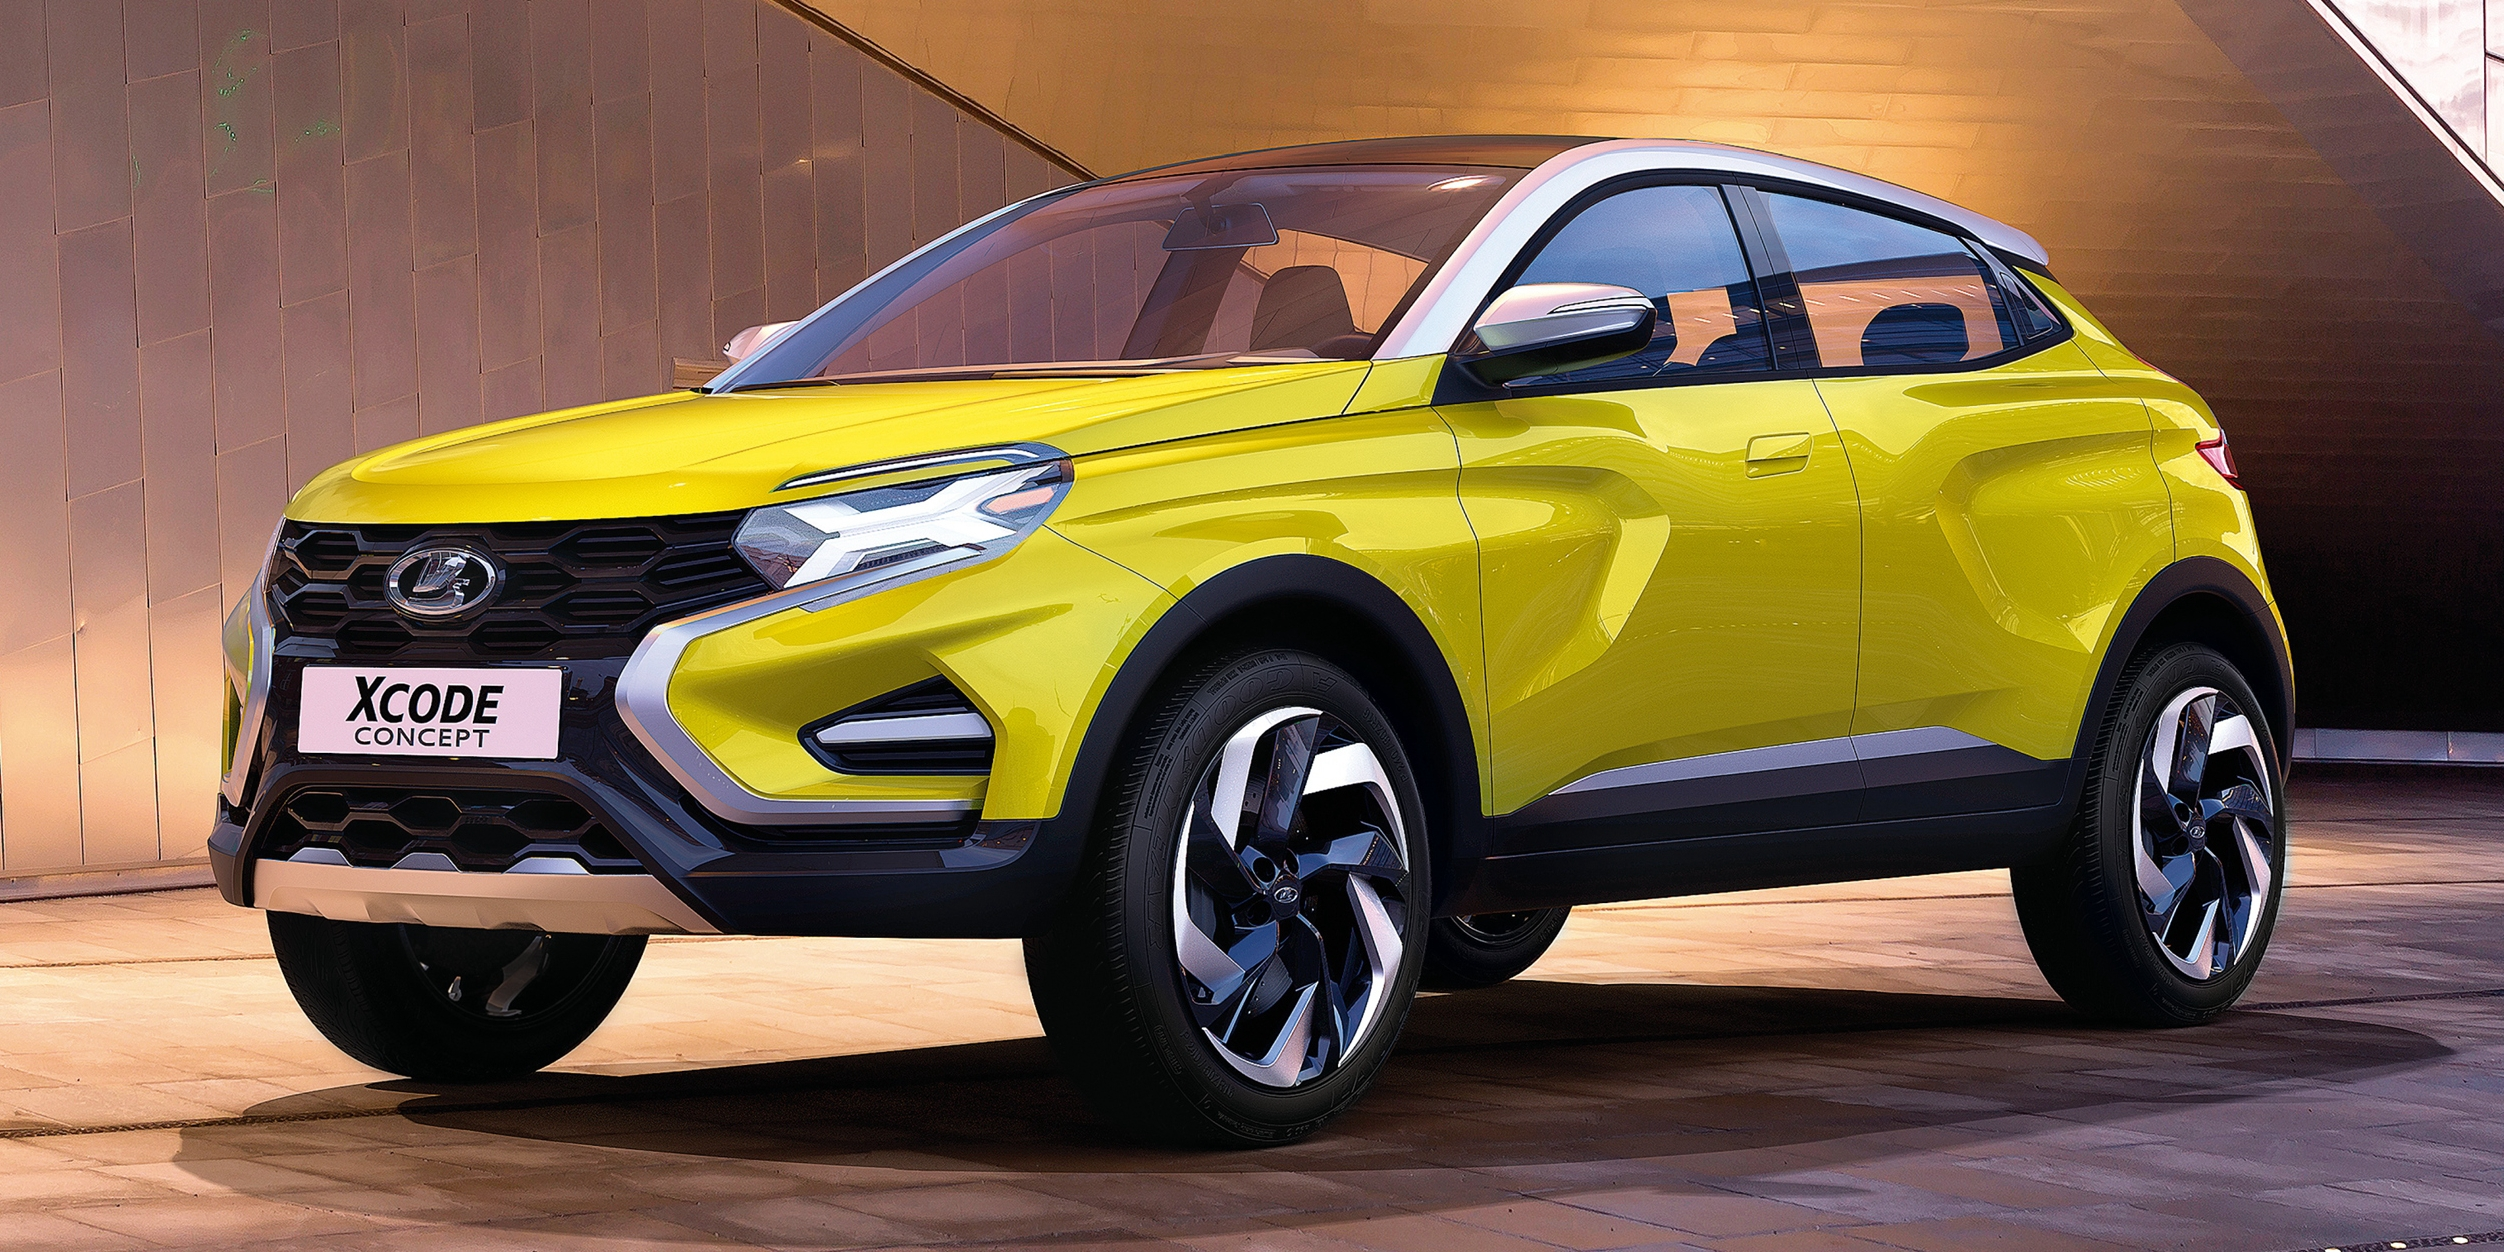 Suv >> Lada XCODE Concept SUV breaks cover in Moscow Paul Tan - Image 541240